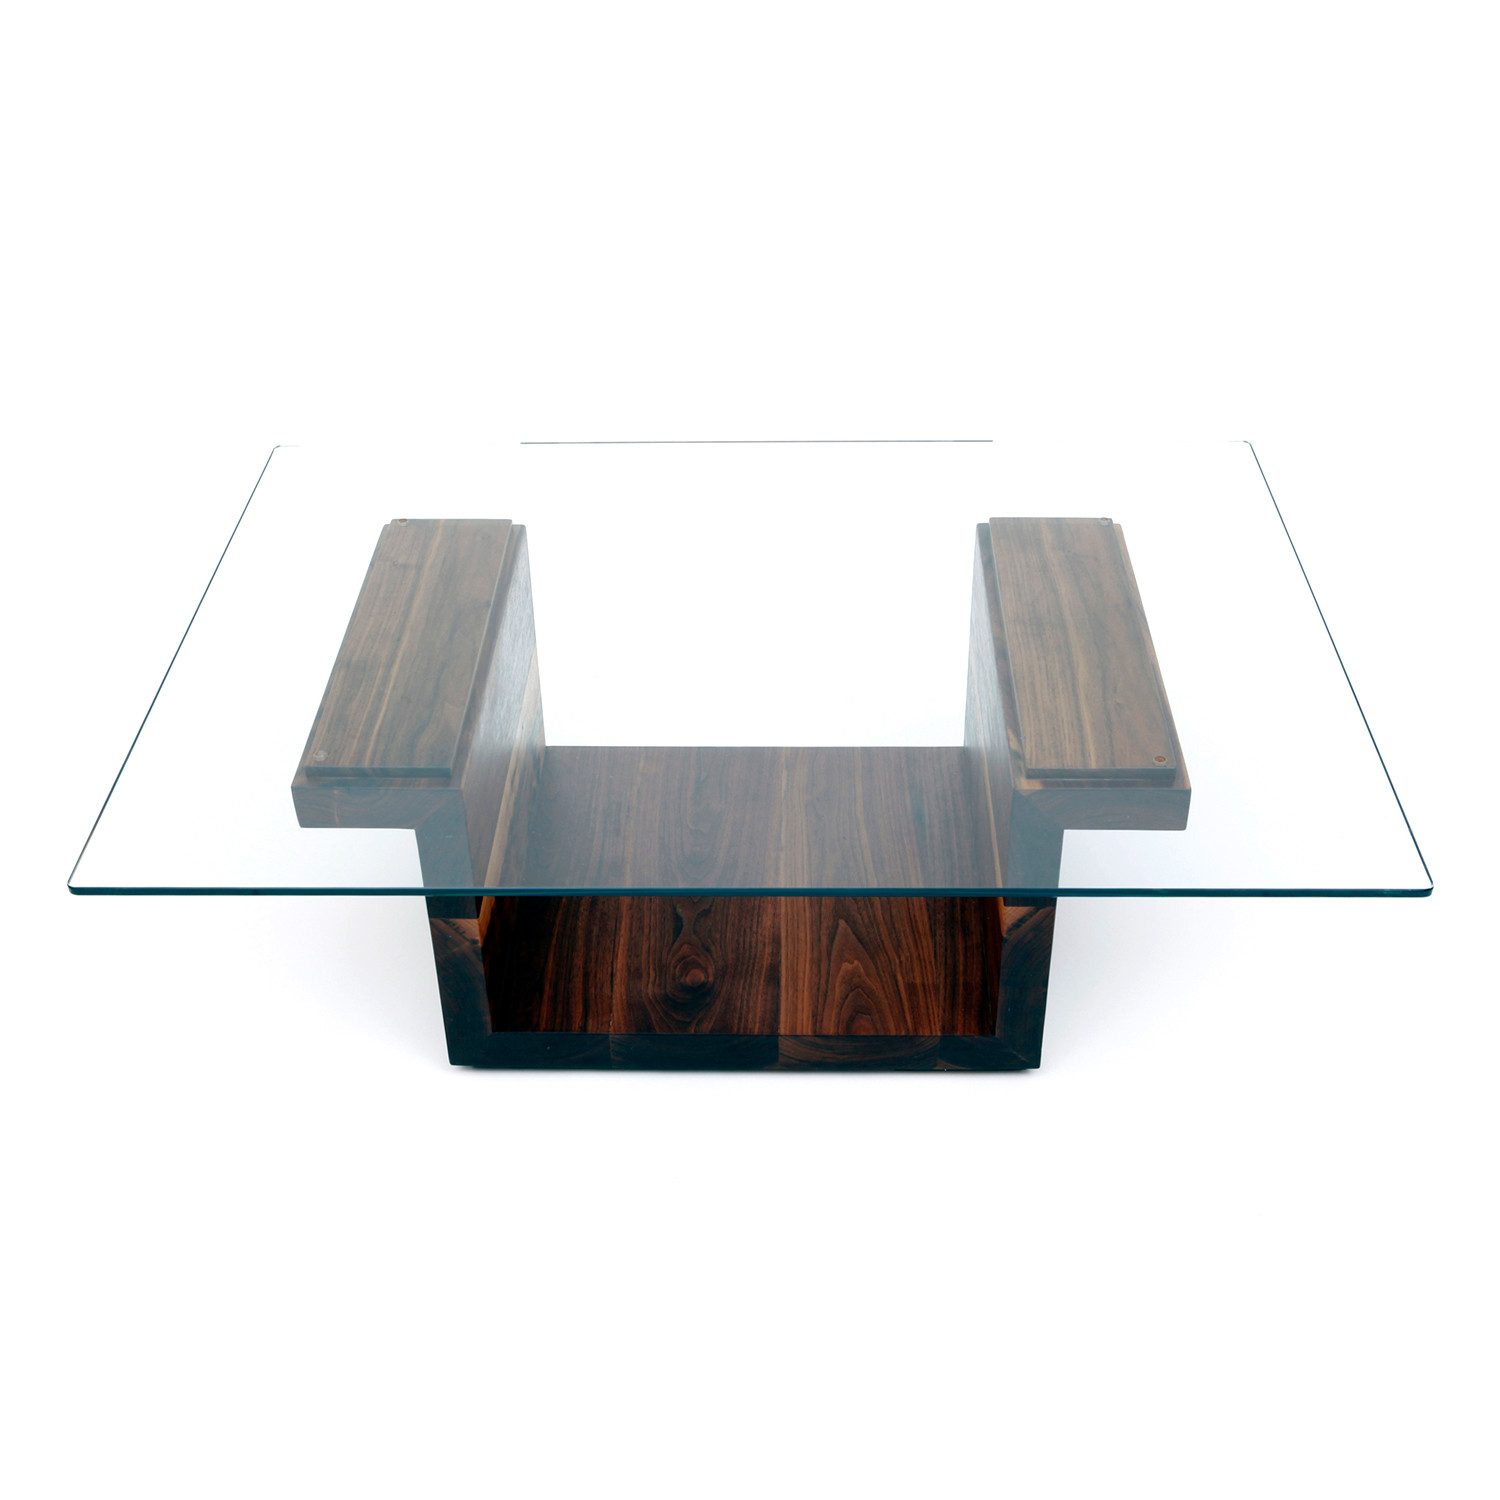 Sqg glass top table walnut large 42 l x 30 w top for Large glass table top